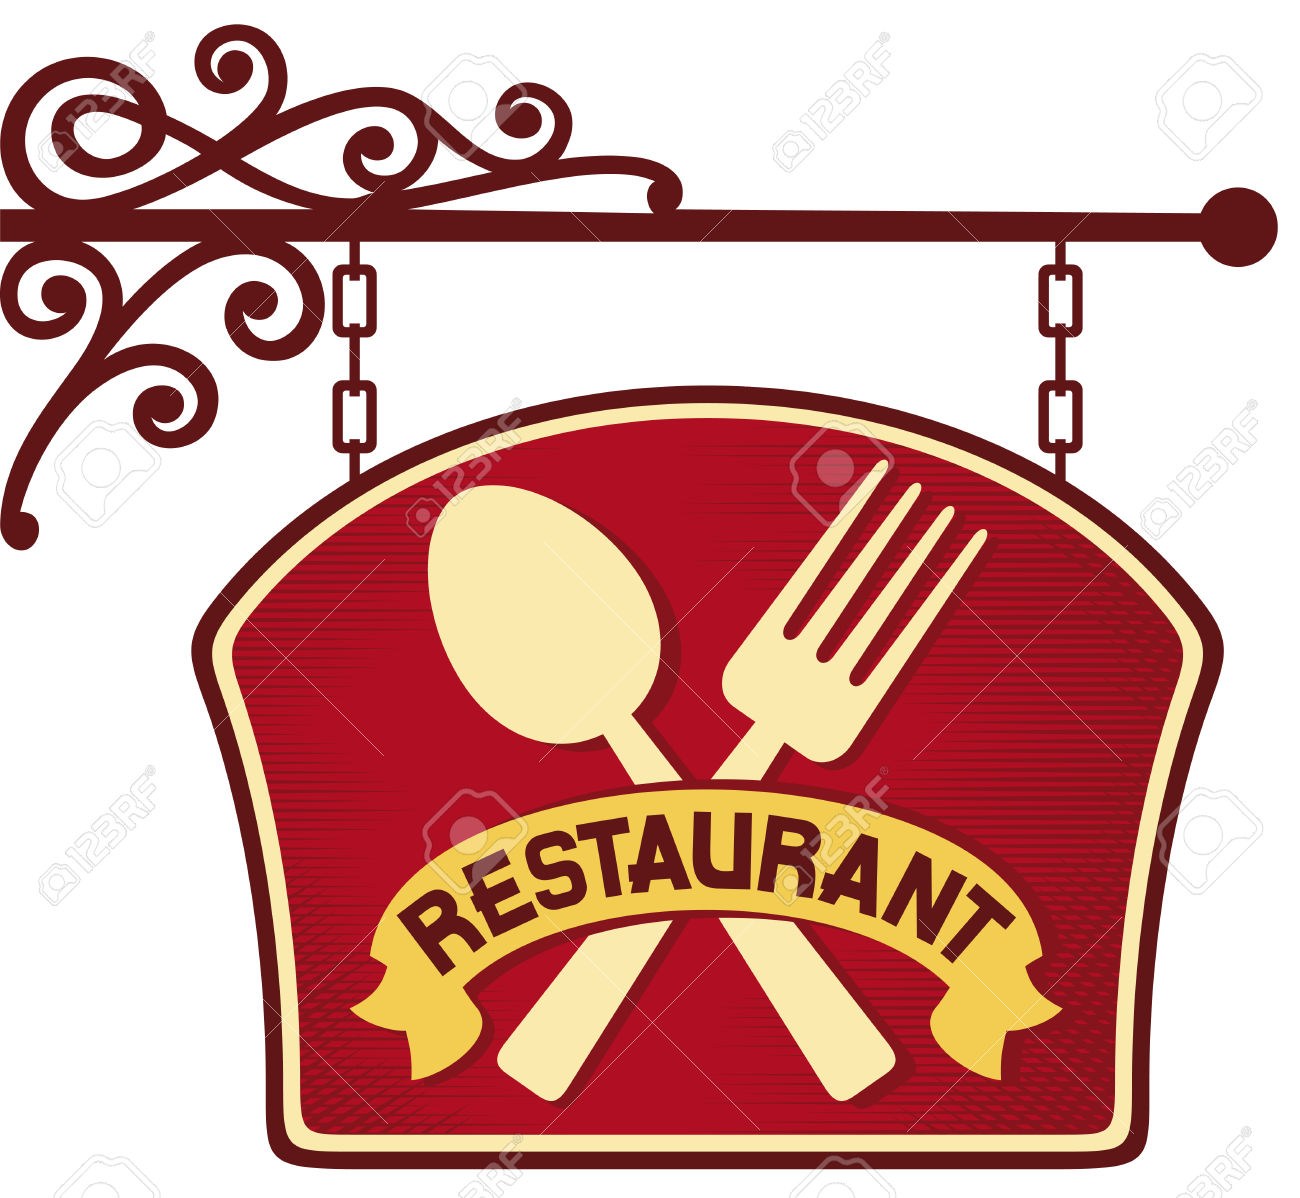 Restaurant clipart free download images 2.